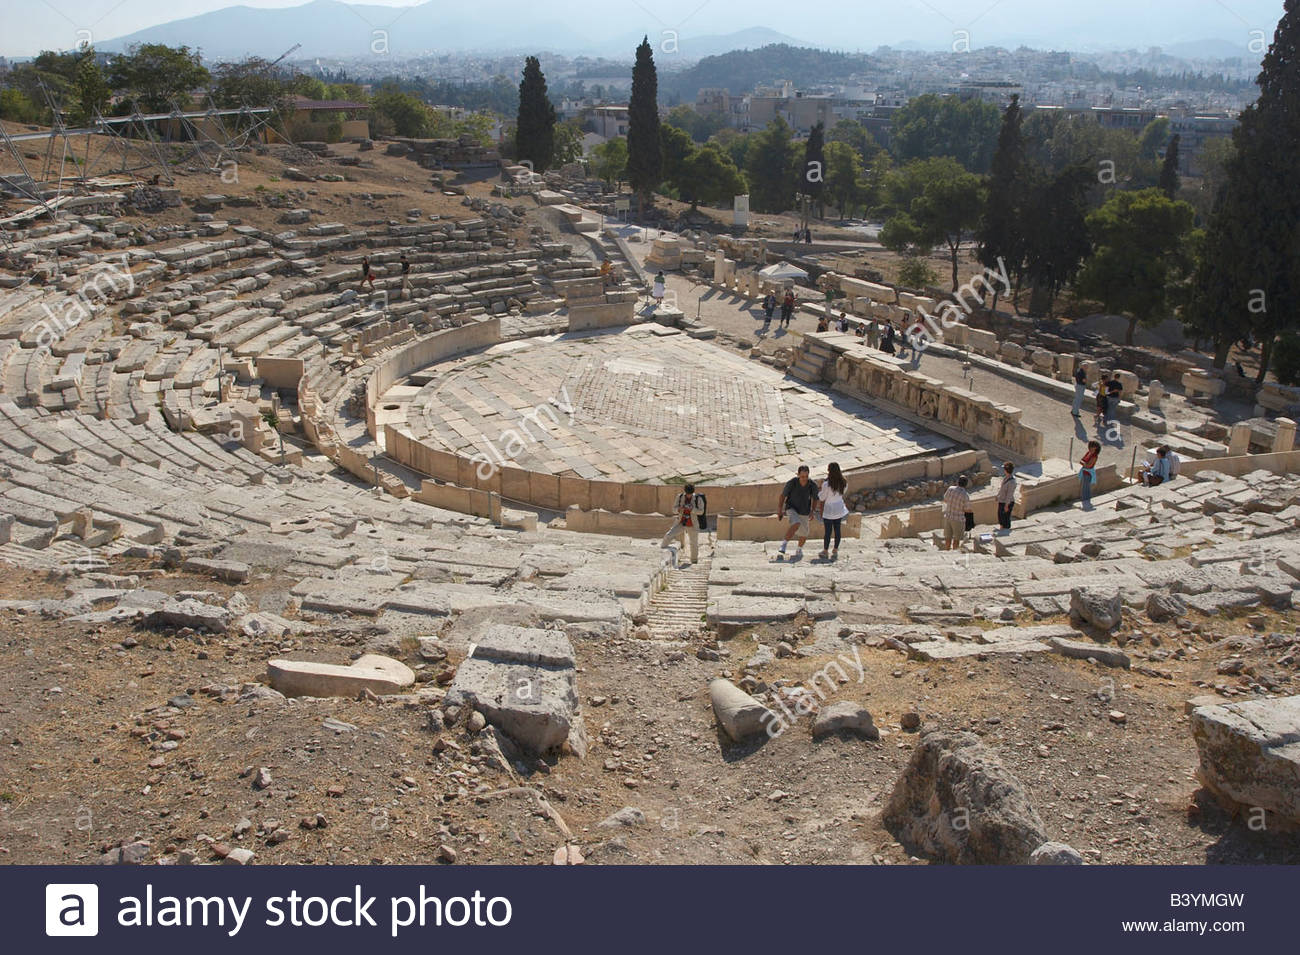 Theater of Dionysus Athens, Theatre of Dionysus Stock Photo, Royalty Free Image: 19663193 - Alamy